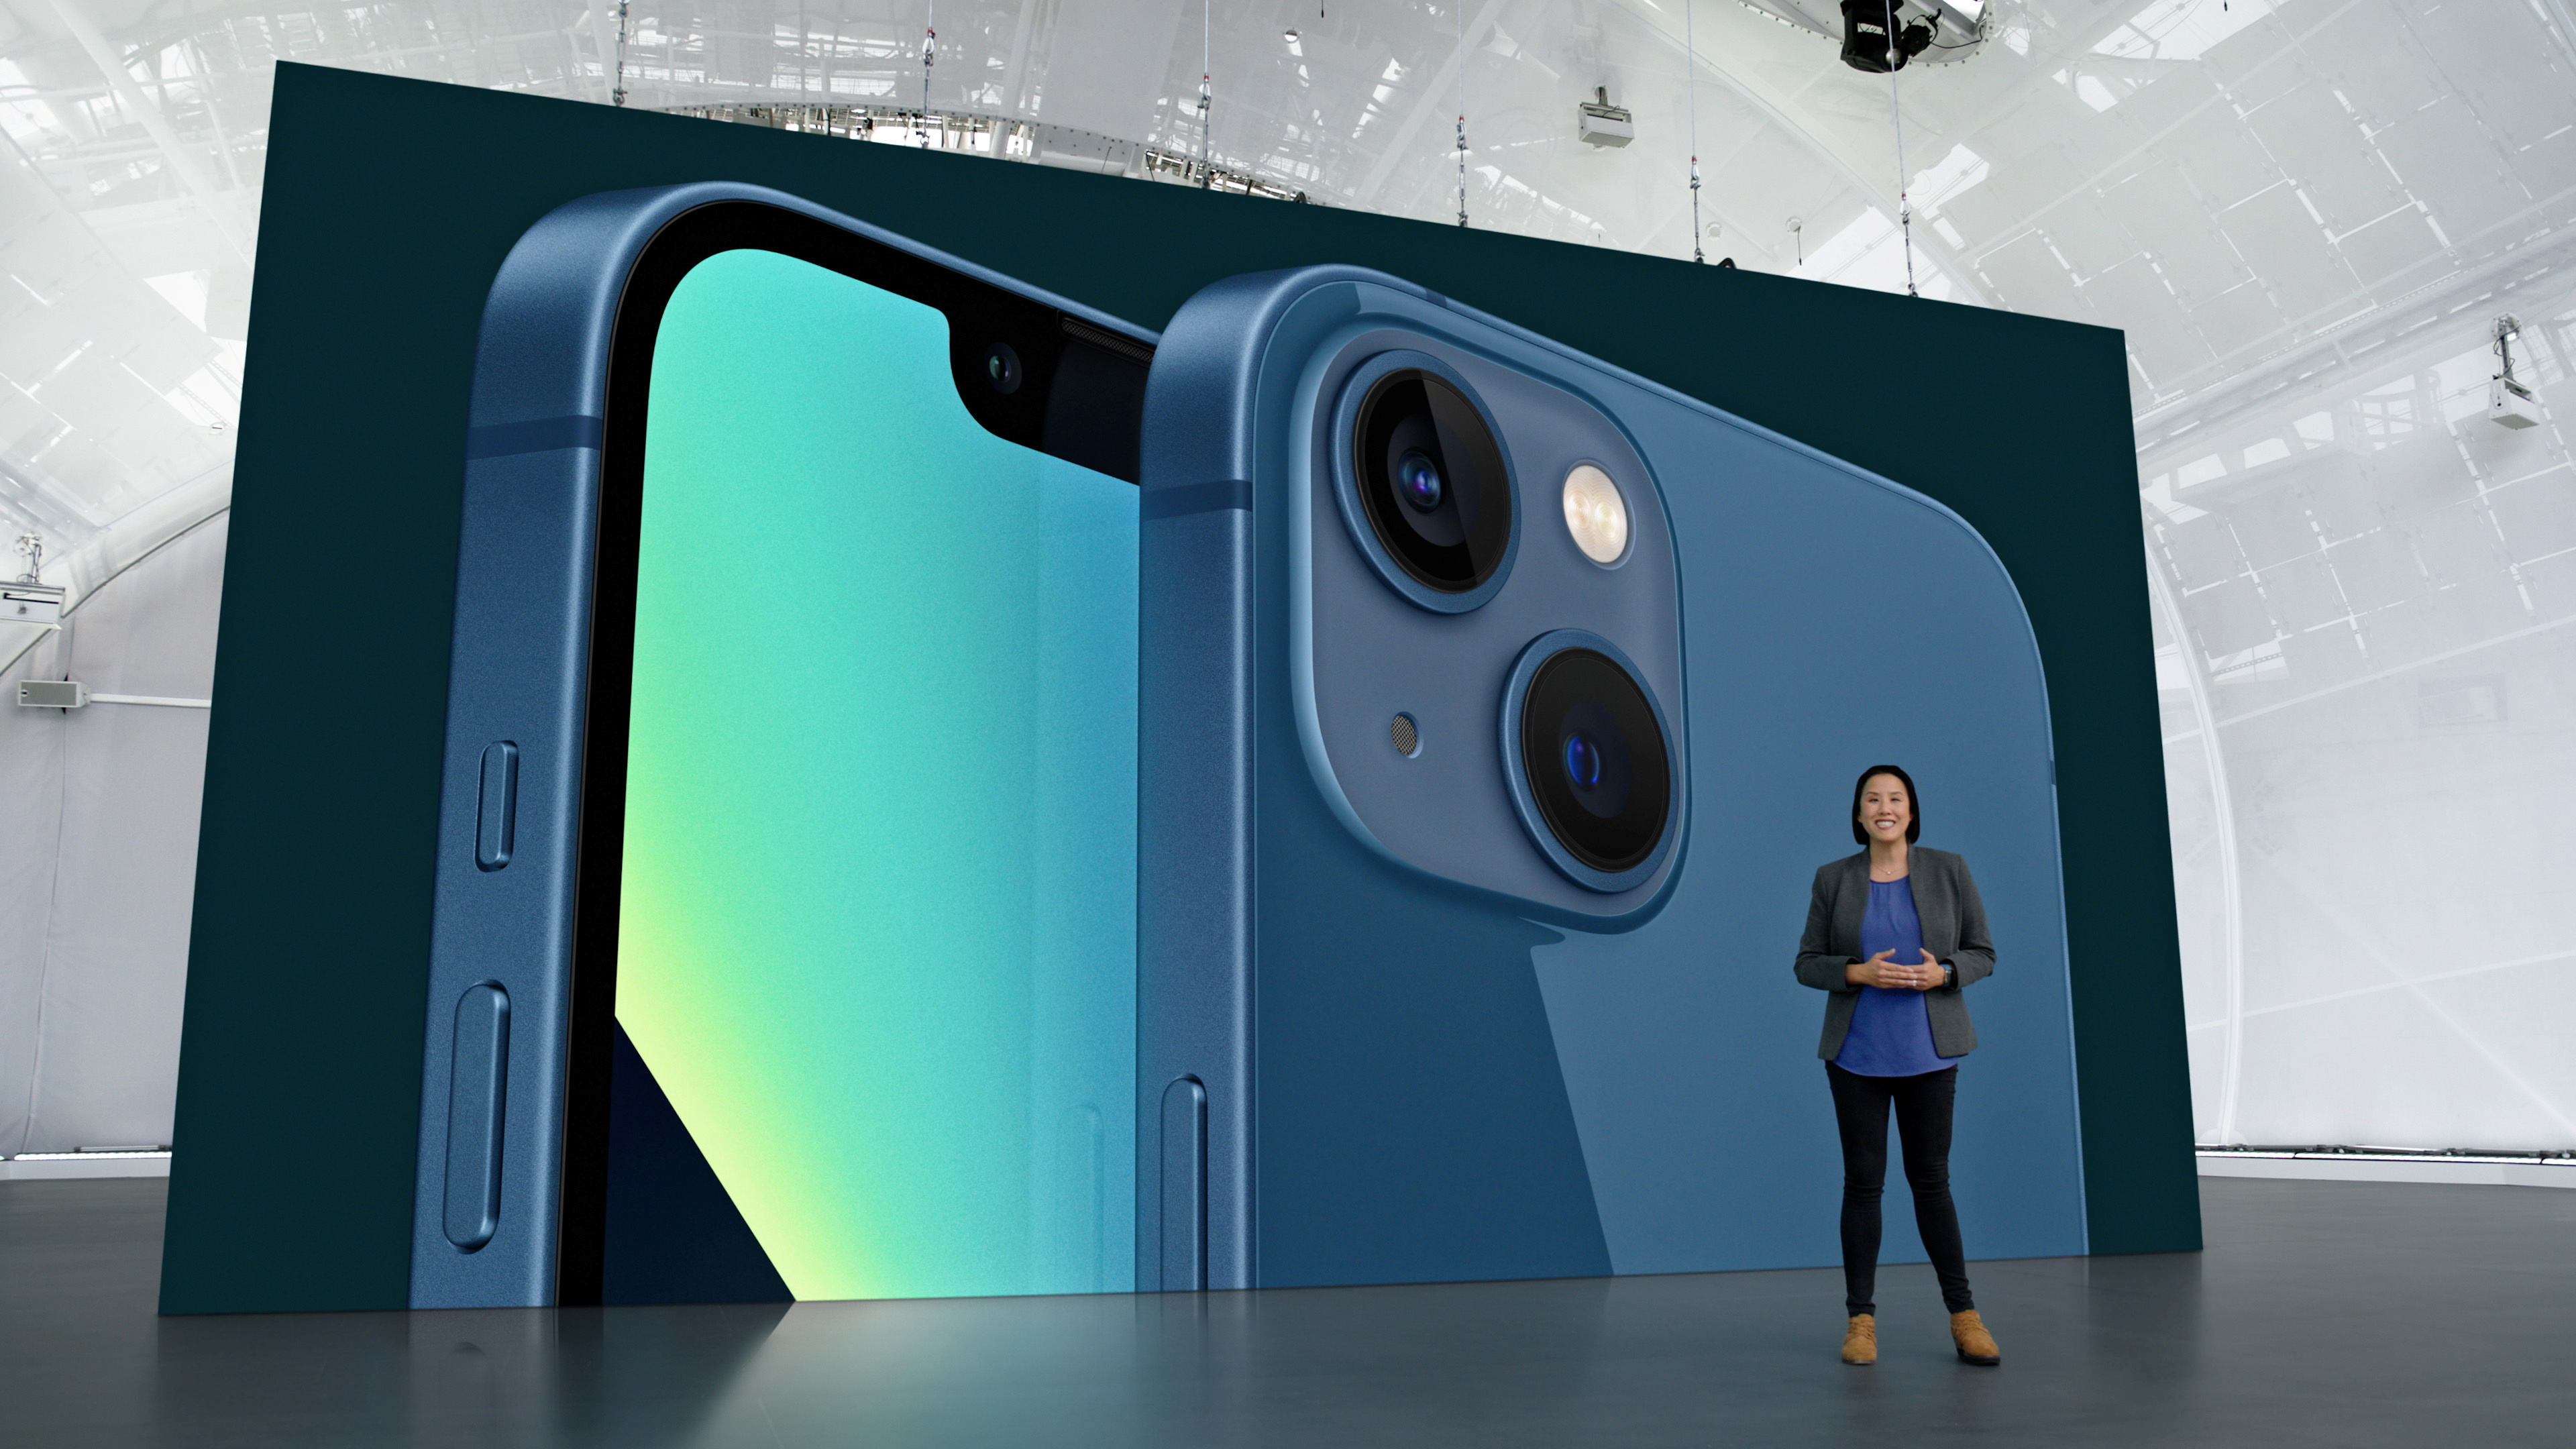 Apple's Kaiann Drance showcases the new iPhone 13 during a special event at Apple Park in Cupertino, California broadcast September 14, 2021 in a still image from video. Apple Inc/Handout via REUTERS